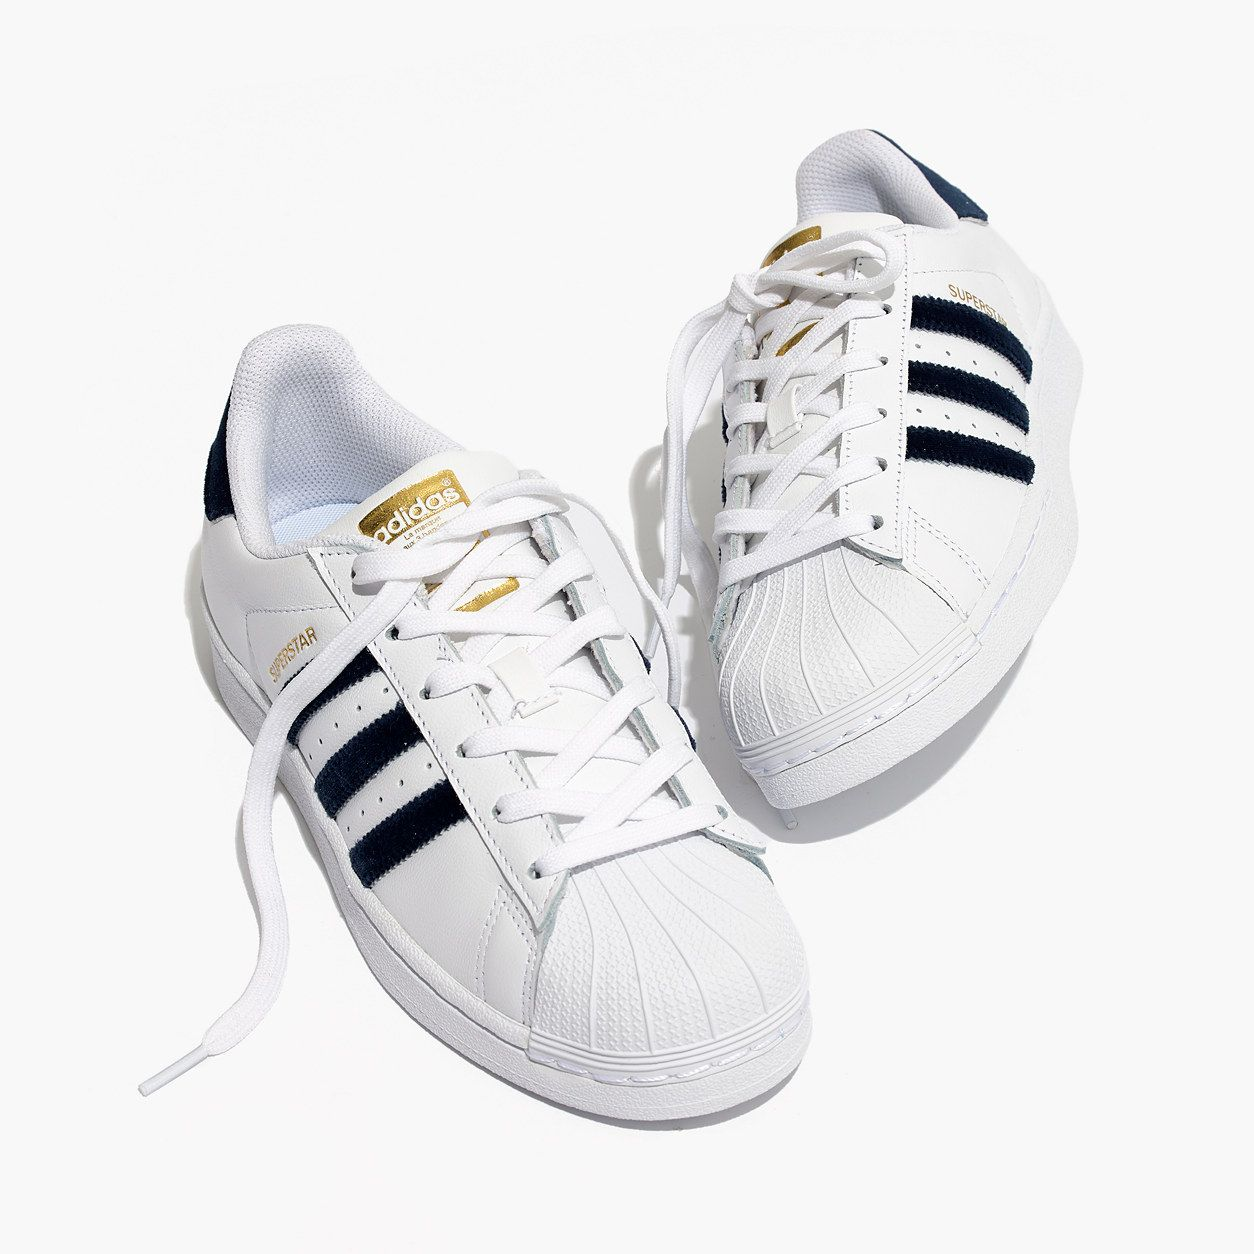 finest selection a13b2 73f08 Madewell Womens Adidas Superstar Lace-Up Sneakers In Velvet